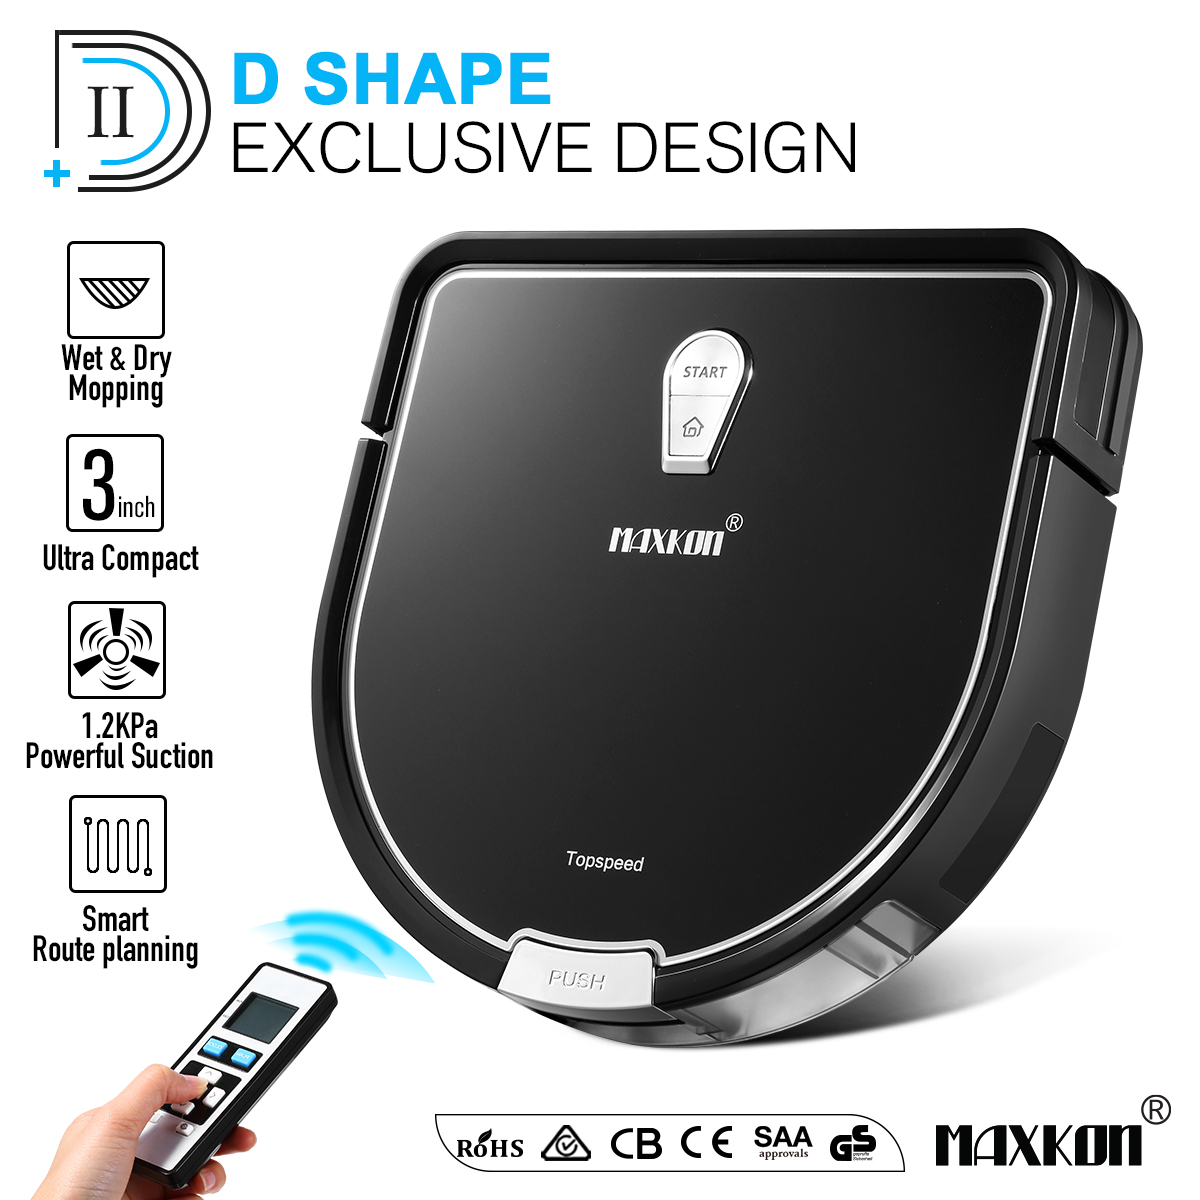 Maxkon Pro Robot Vacuum Cleaner, 2-IN-1 Dry & Wet Mopping Automatic Smart Robotic Sweeper, Self-Charging, Scheduling Setting, Edge Cleaning & Cliff Sensor Tec w/ Remote